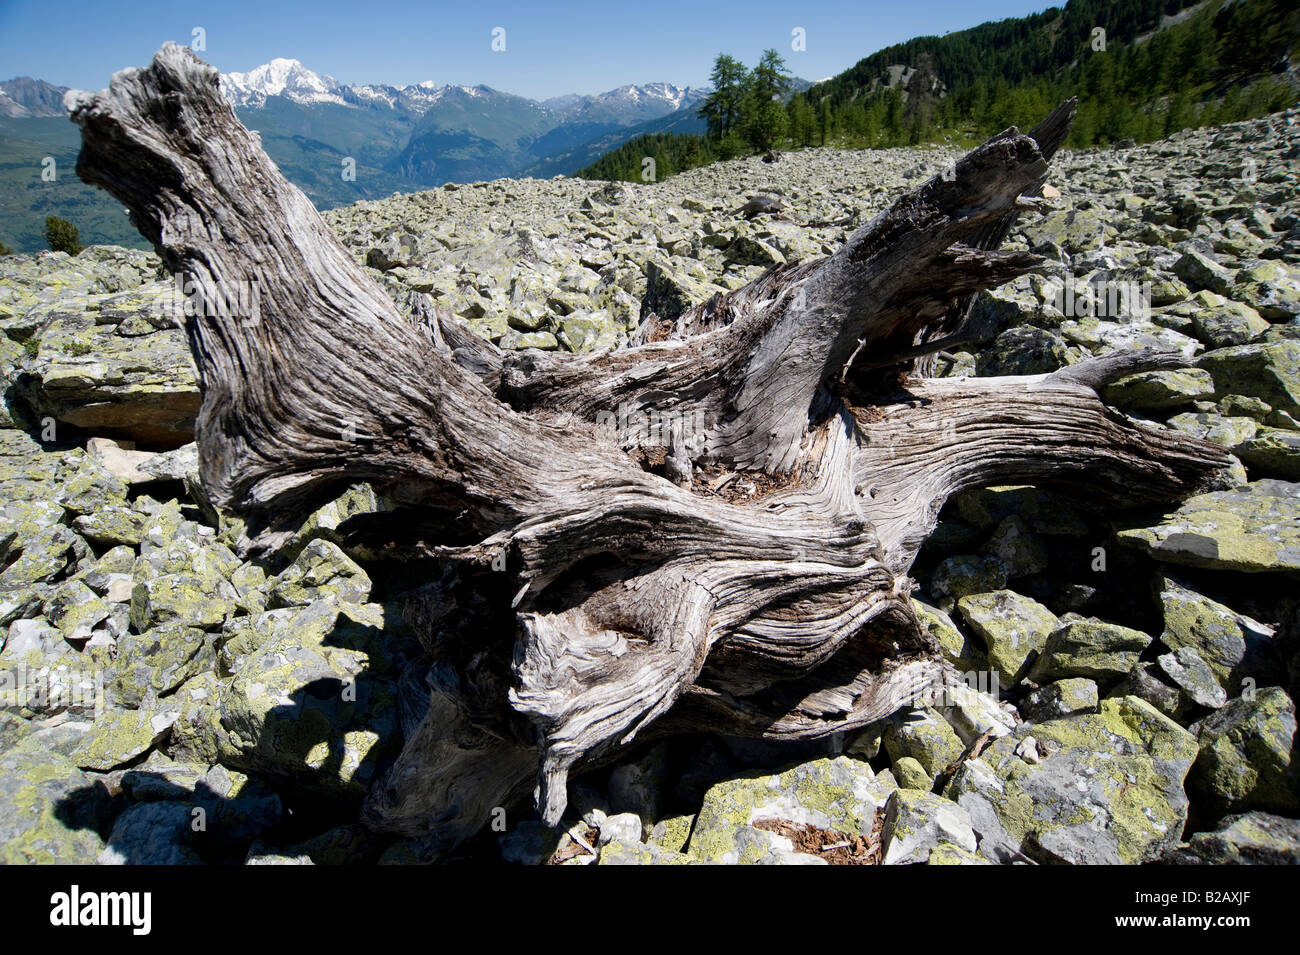 dead-tree-on-boulder-field-in-the-french